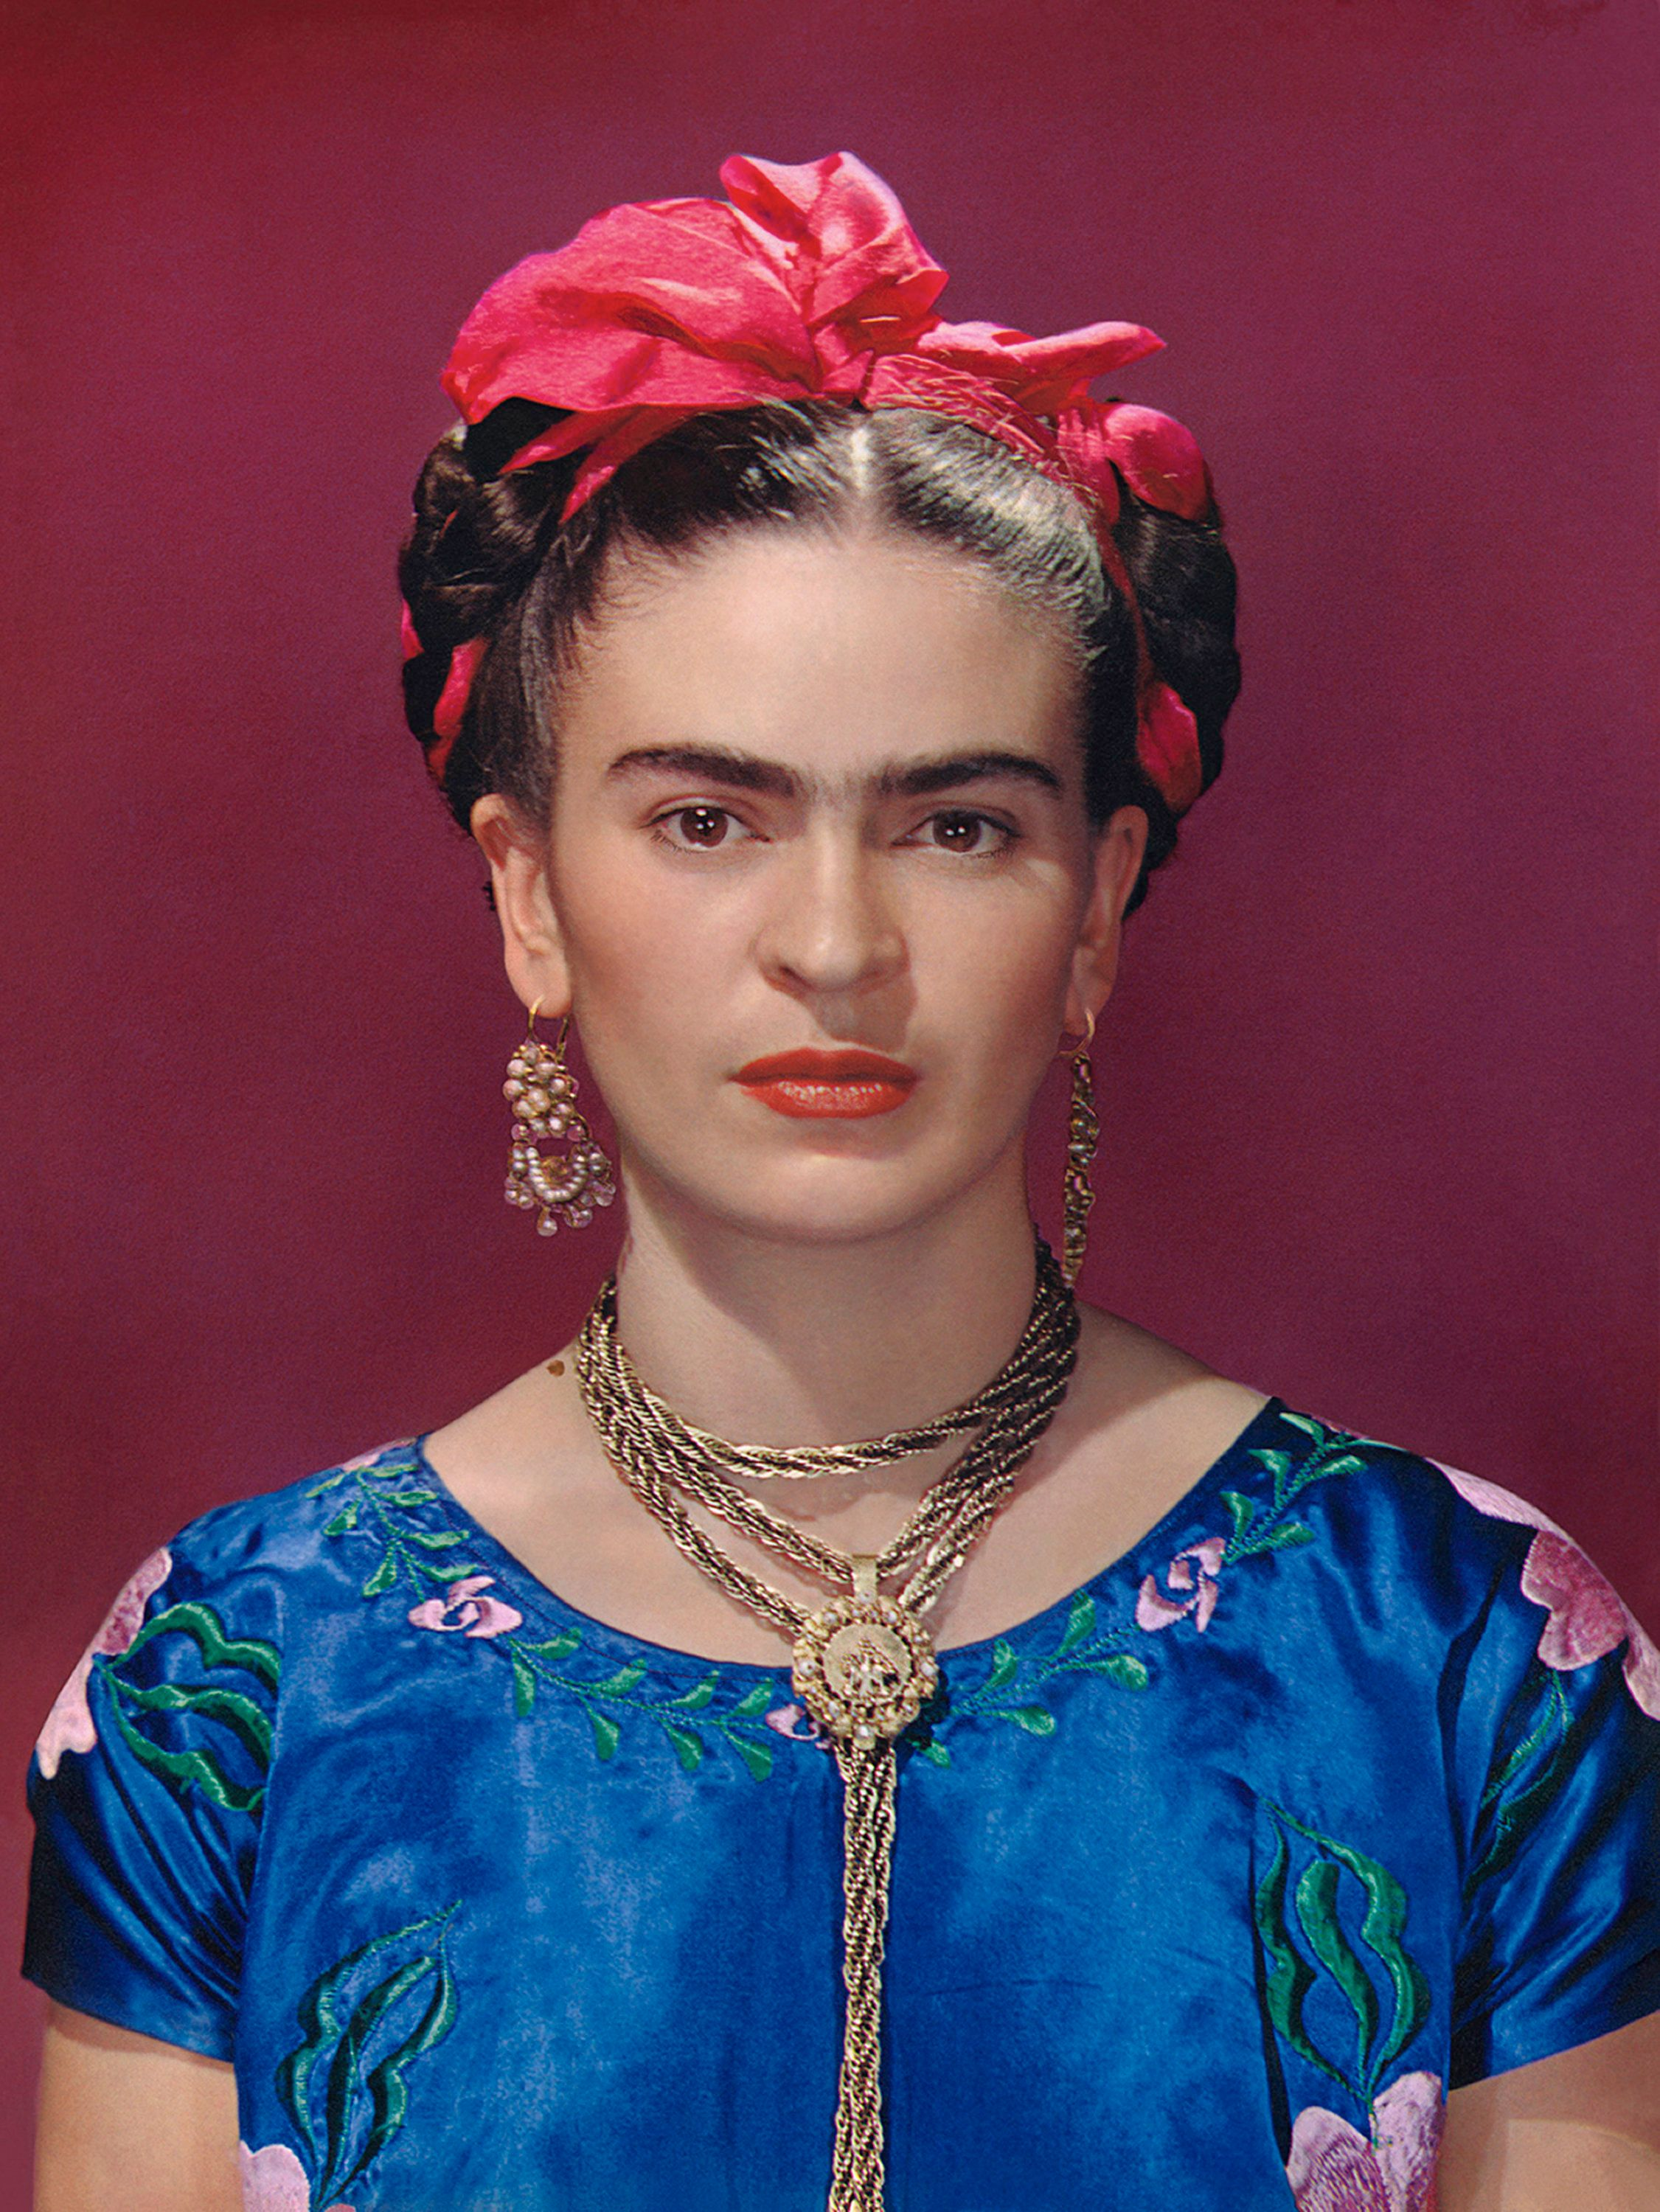 Frida Kahlo's Eyebrow Pencil And Prosthetic Leg Go On Display In The